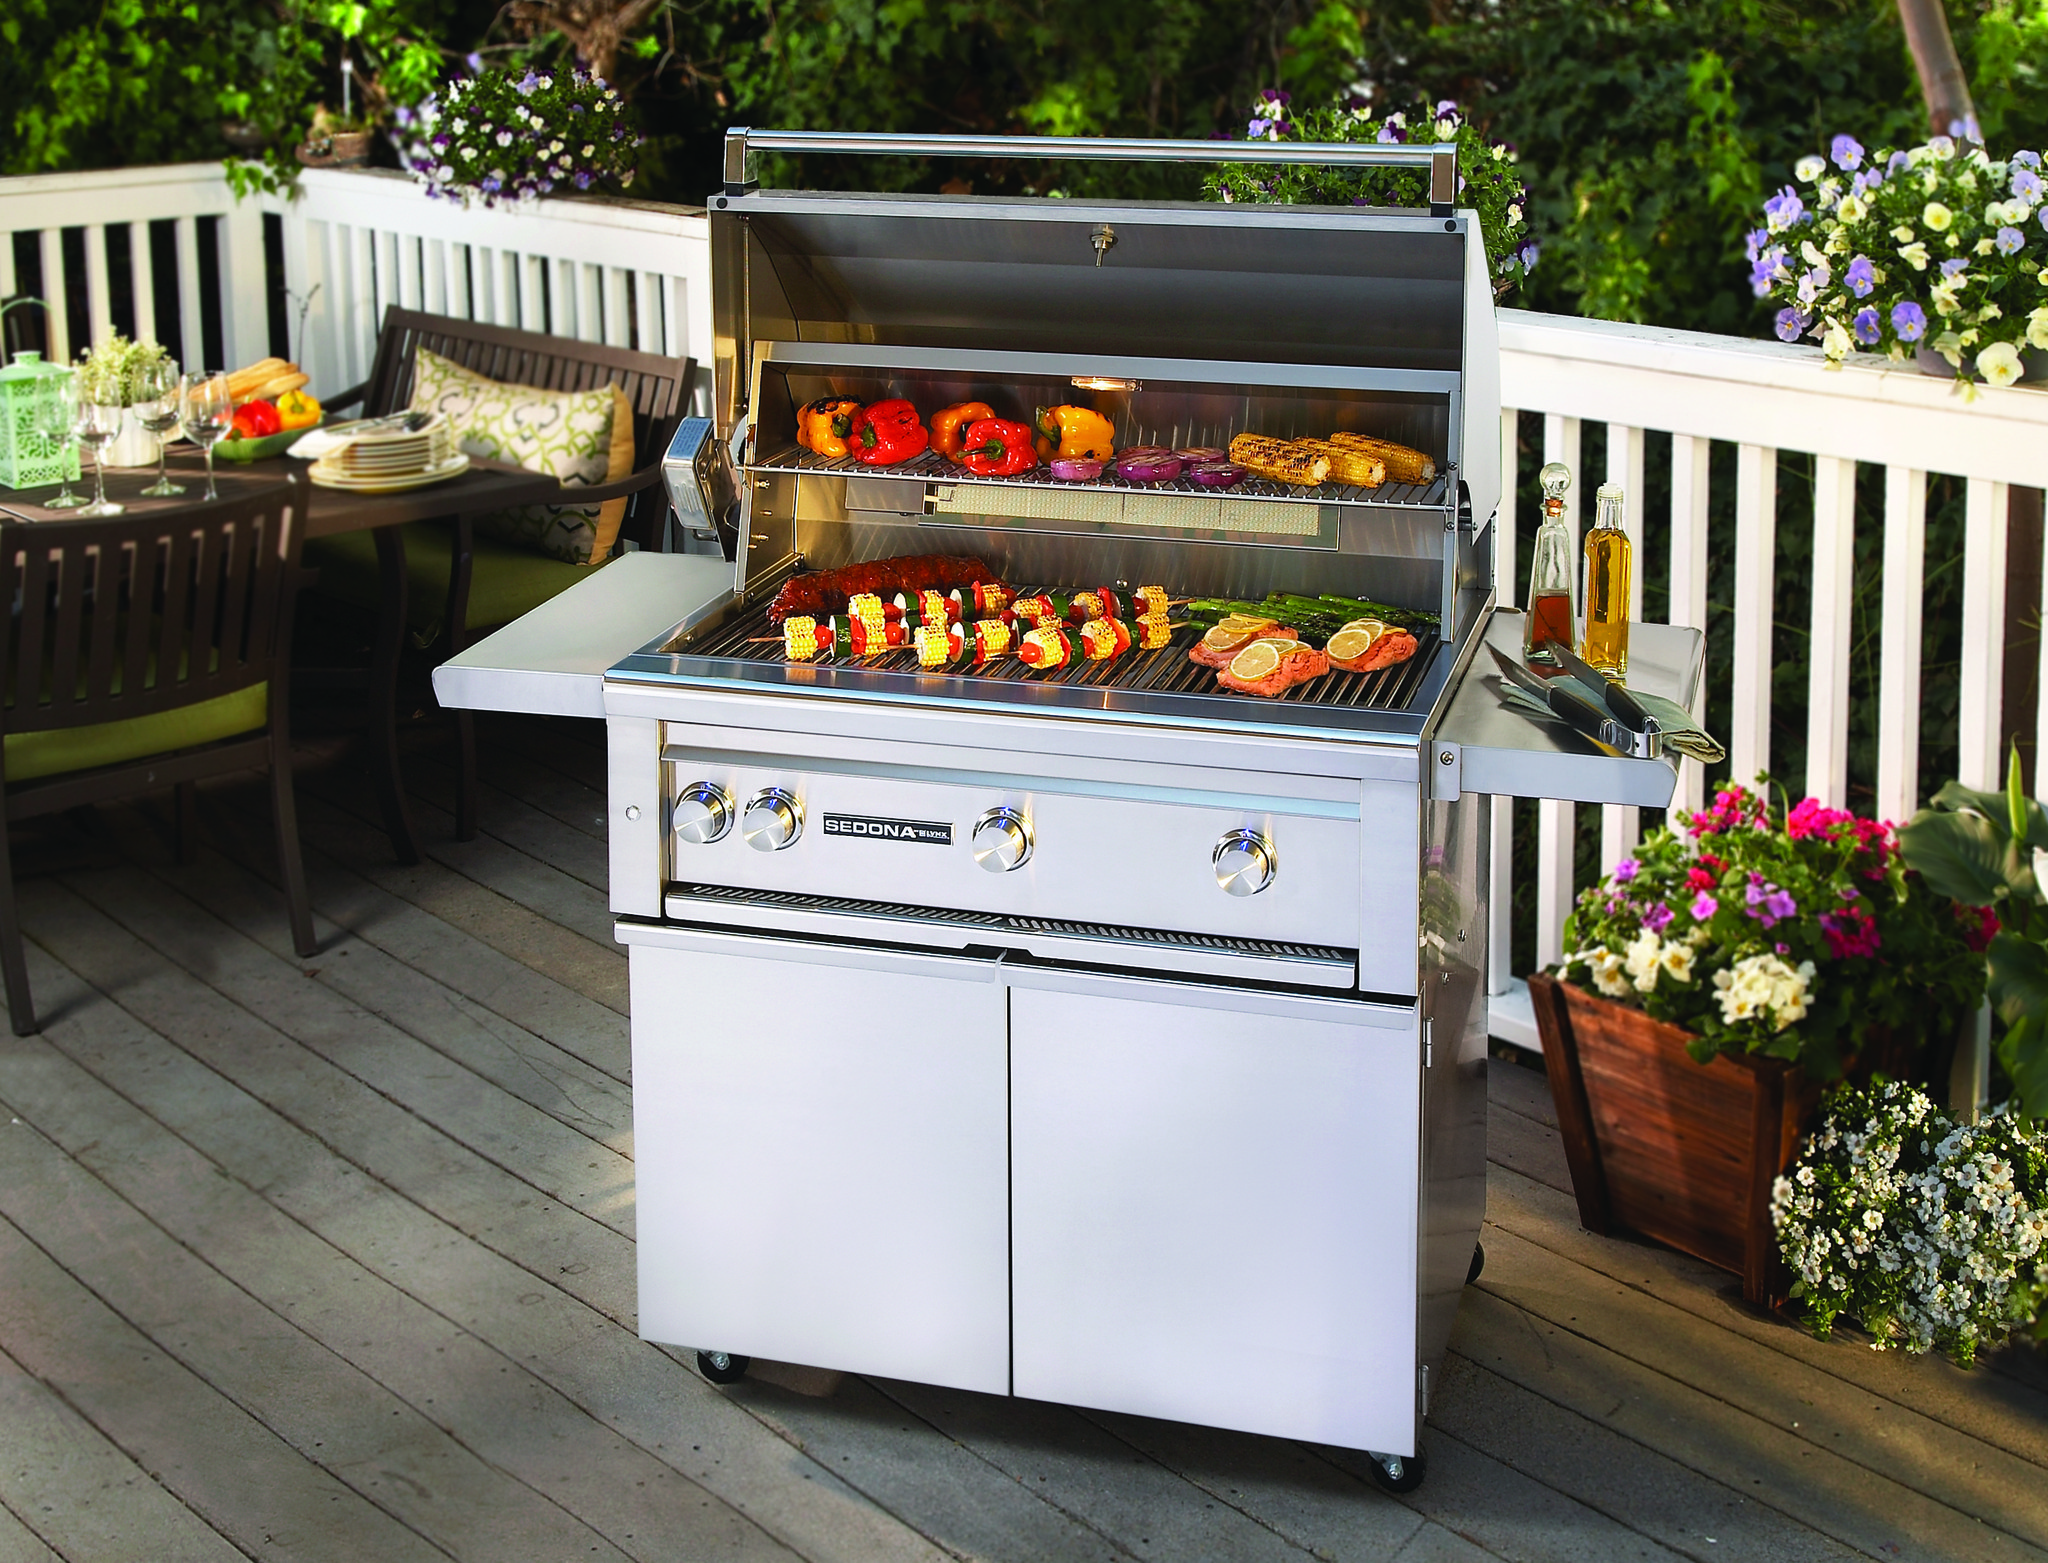 How to buy a grill - Chicago Tribune